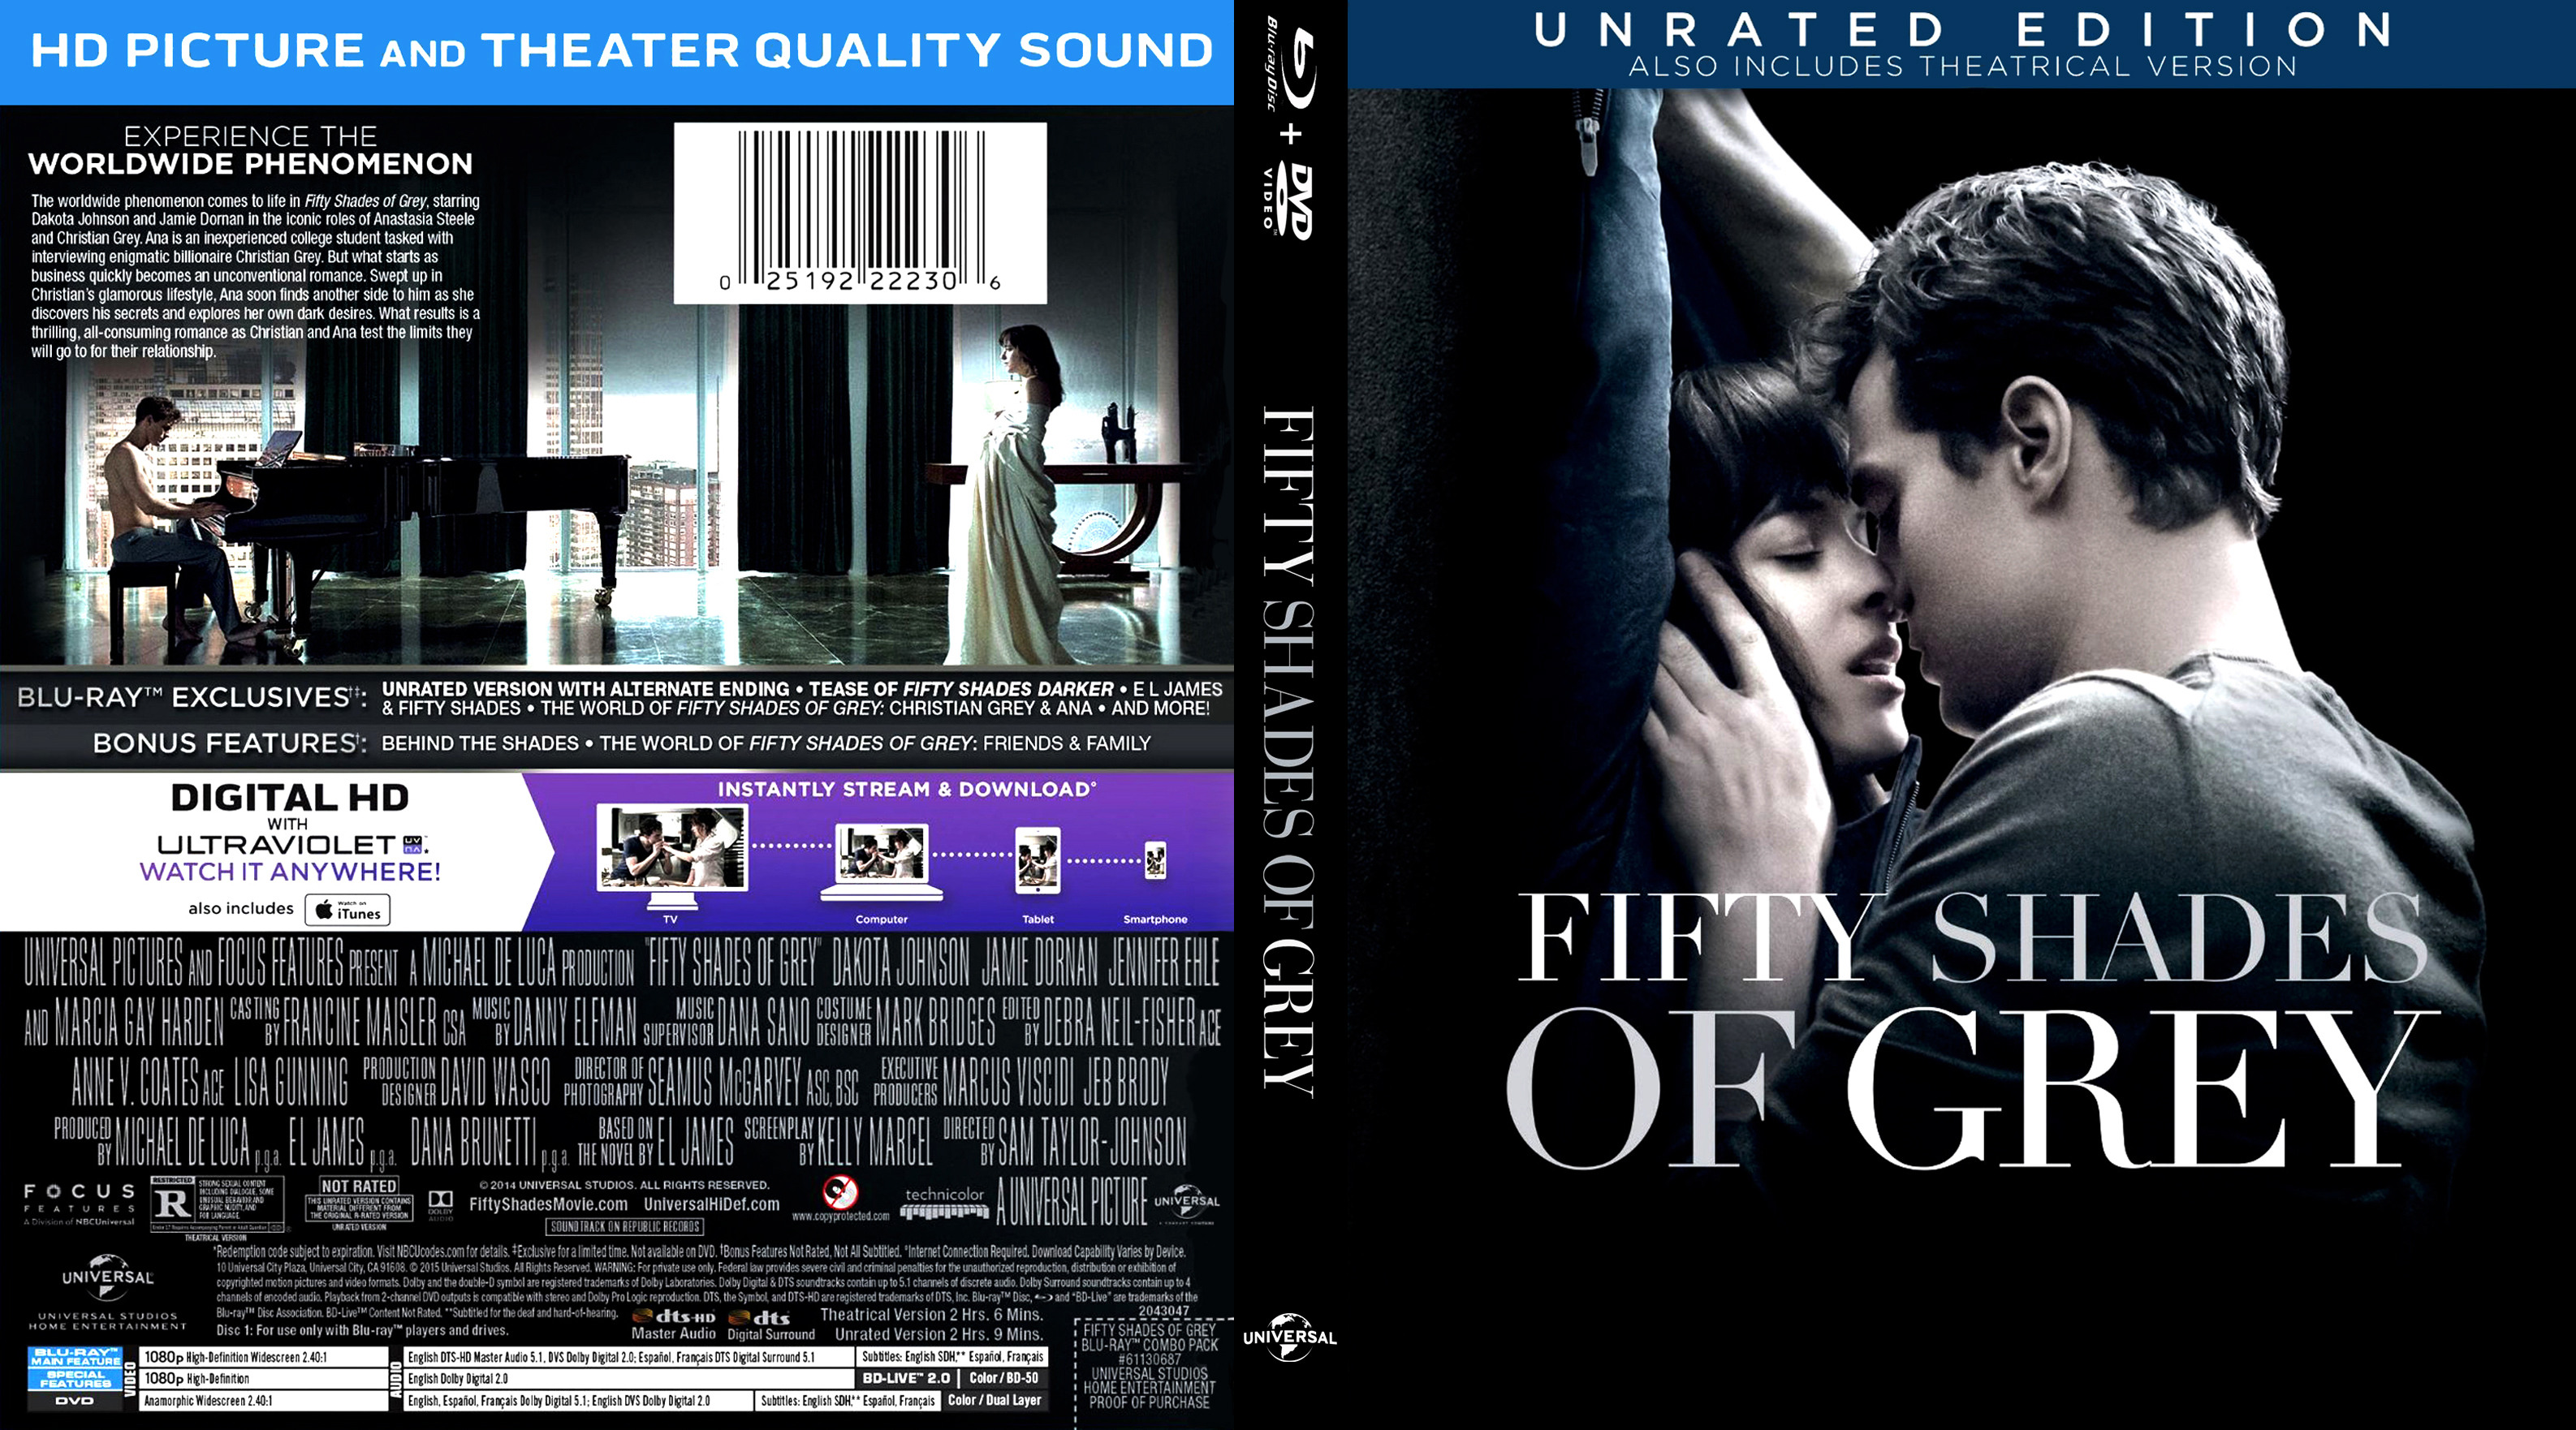 Fifty Shades Of Grey Cover Dvd Covers Cover Century Over